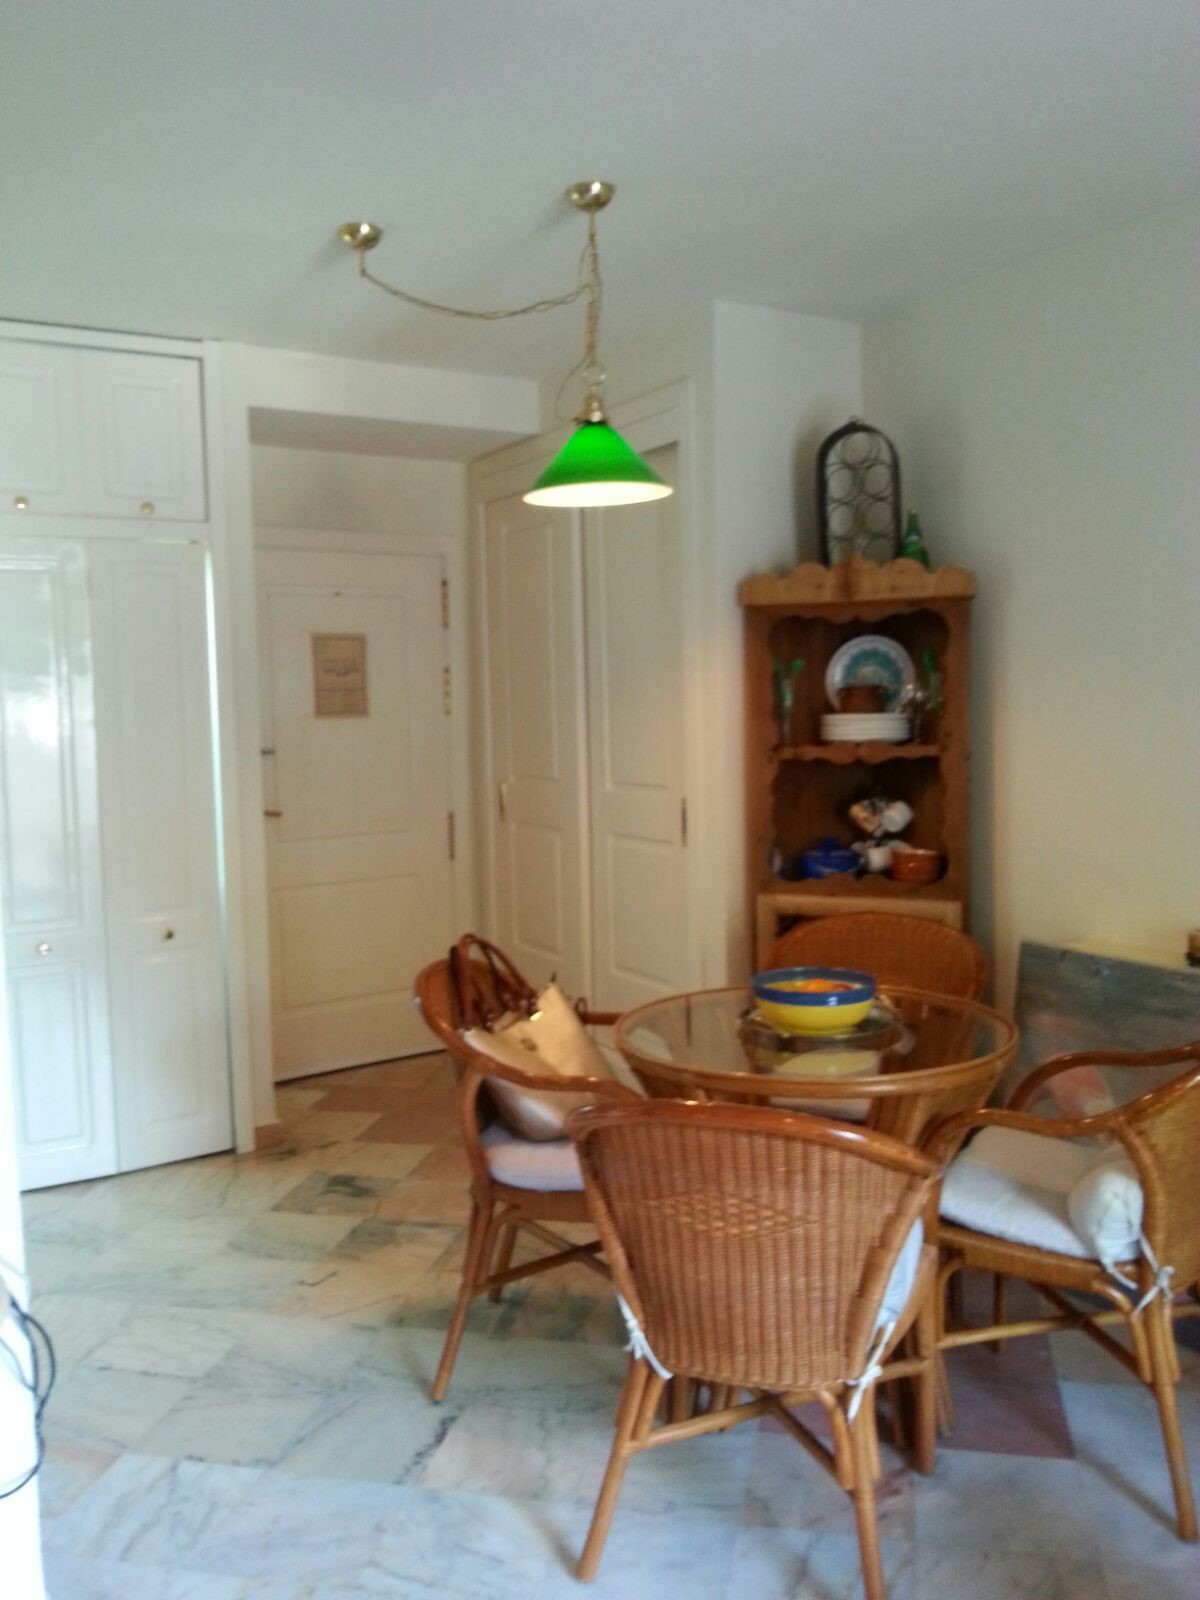 Nice studio in Urbanization Romana Playa, with bathroom and kichen and big terrace  with a lot of su, Spain